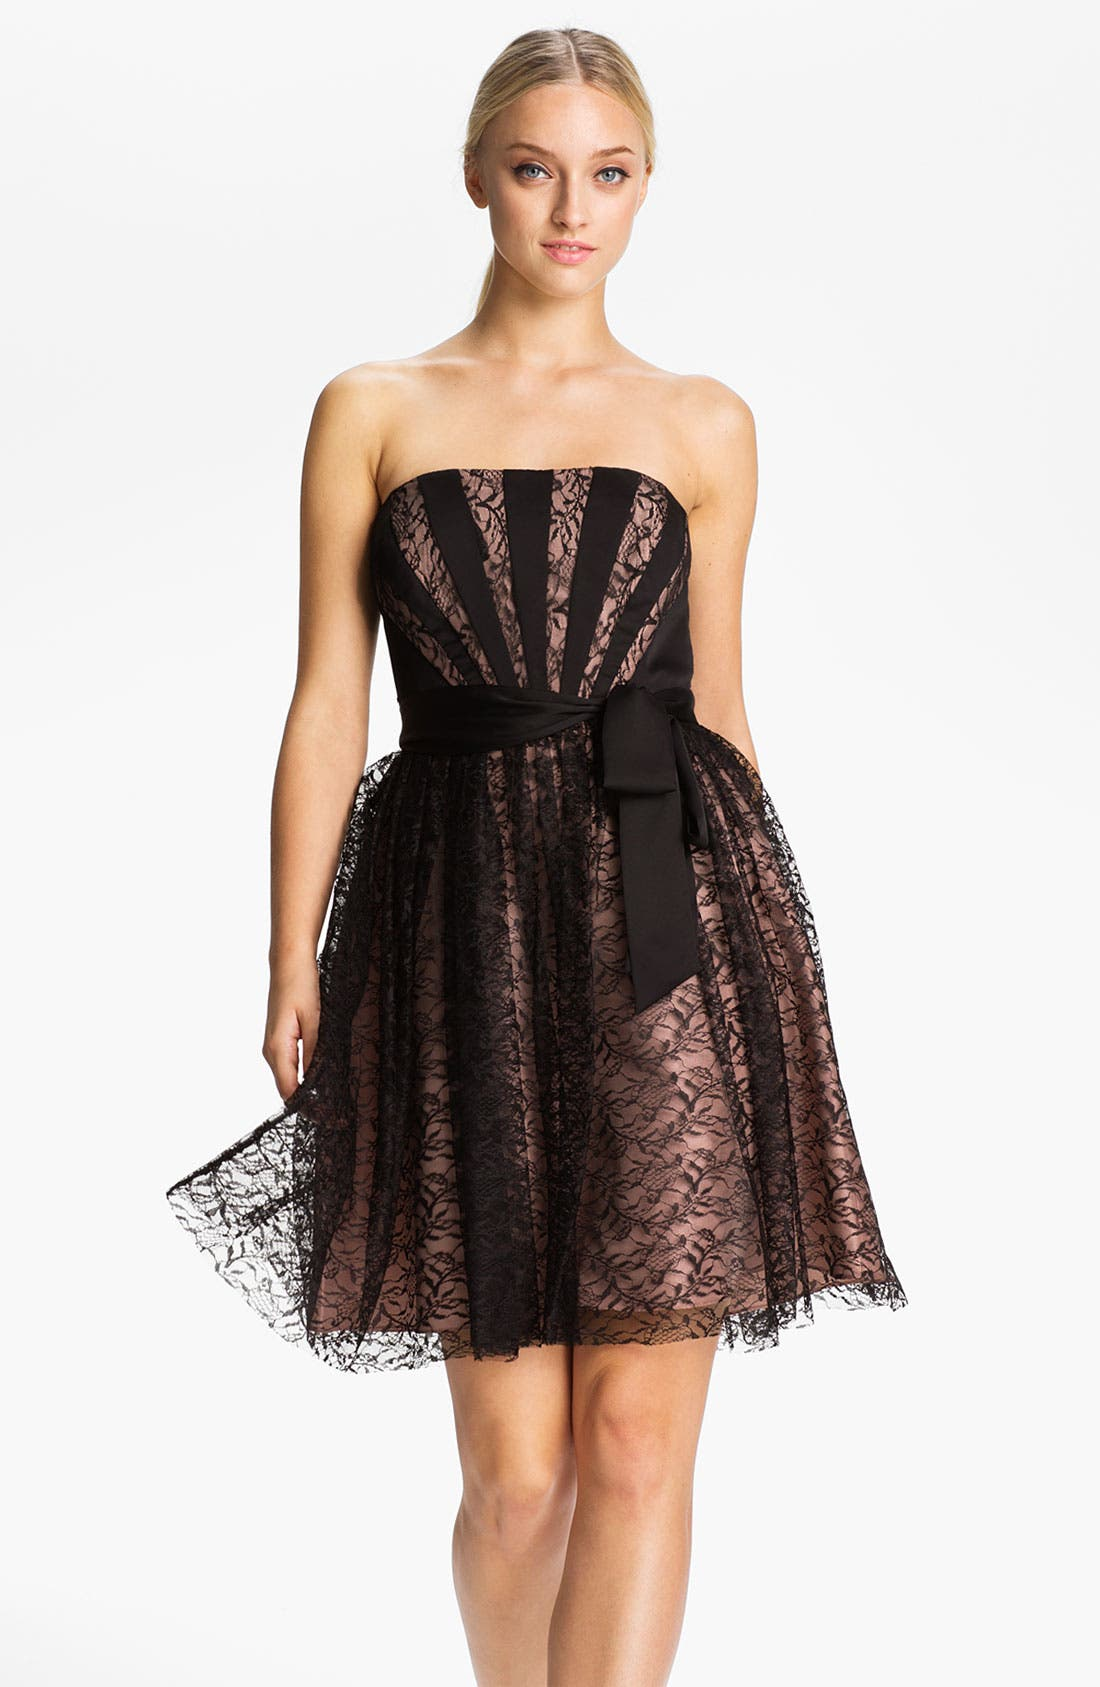 Alternate Image 1 Selected - Max & Cleo 'Rebecca' Strapless Satin & Lace Dress